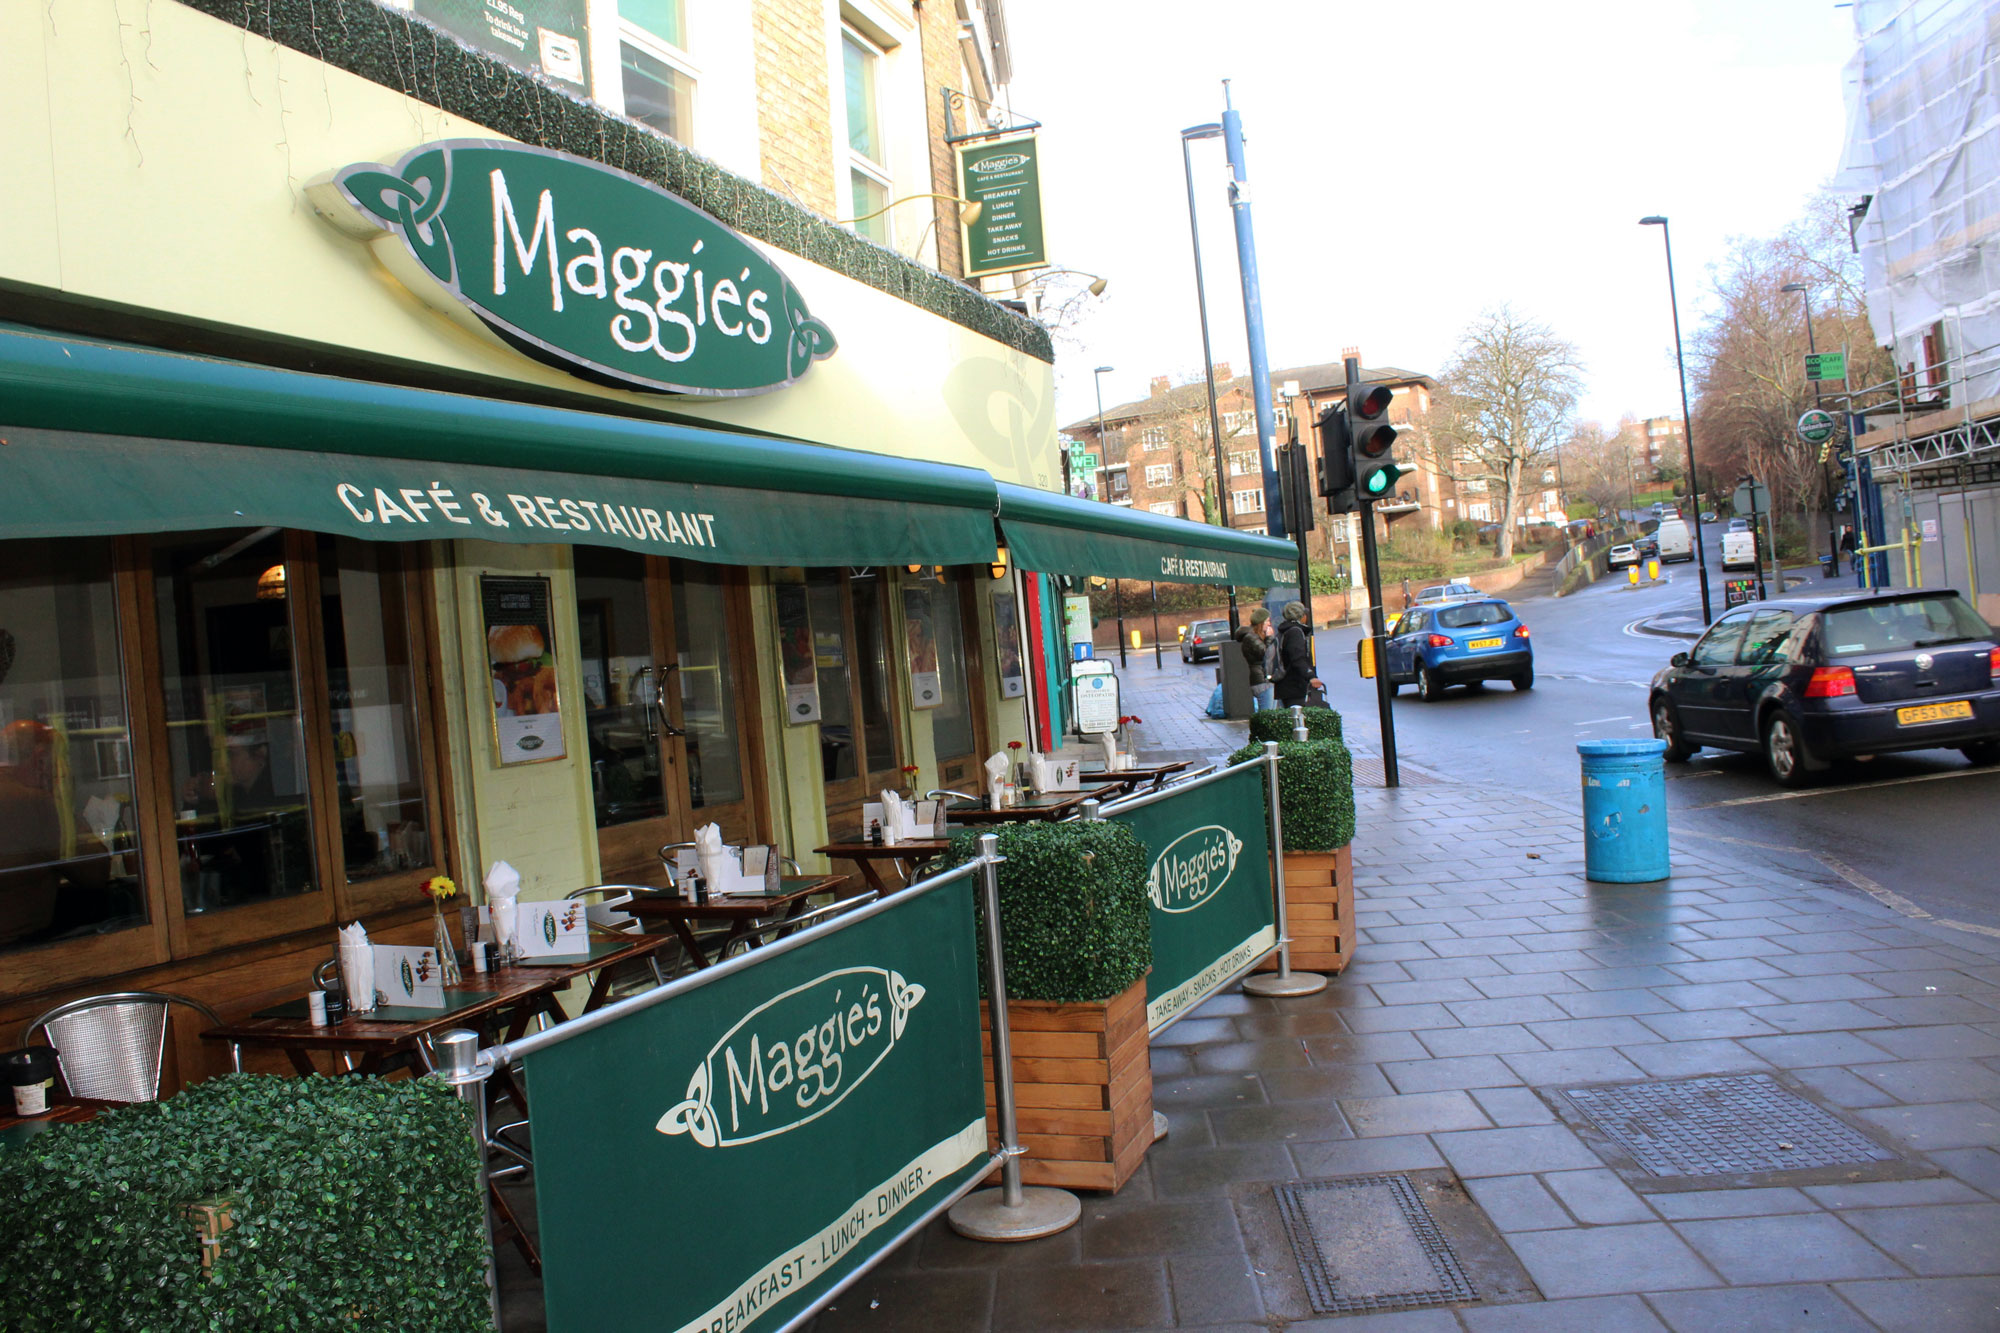 maggies-cafe-lewisham-london9